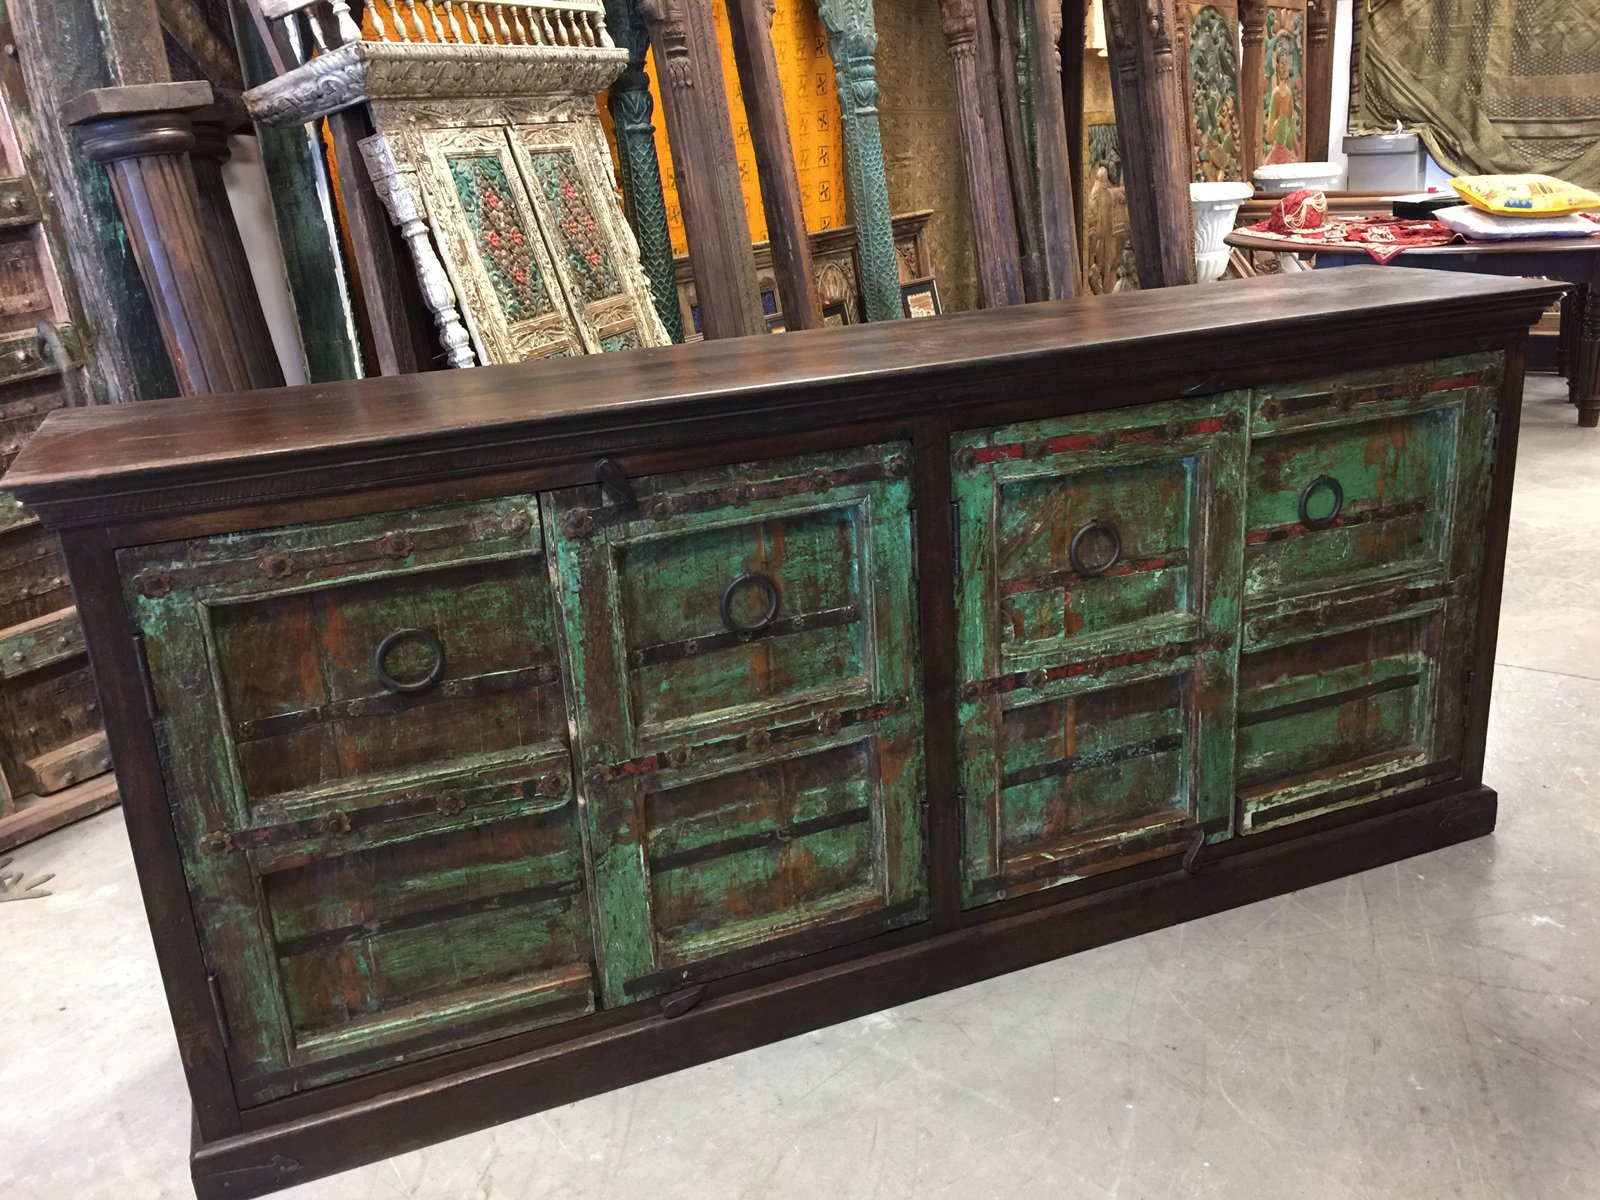 Mogulinterior Antique Hand Carved Chest Brown Green Sideboards Chest TV Console Buffet Storage Cabinet Rustic Spanish Style